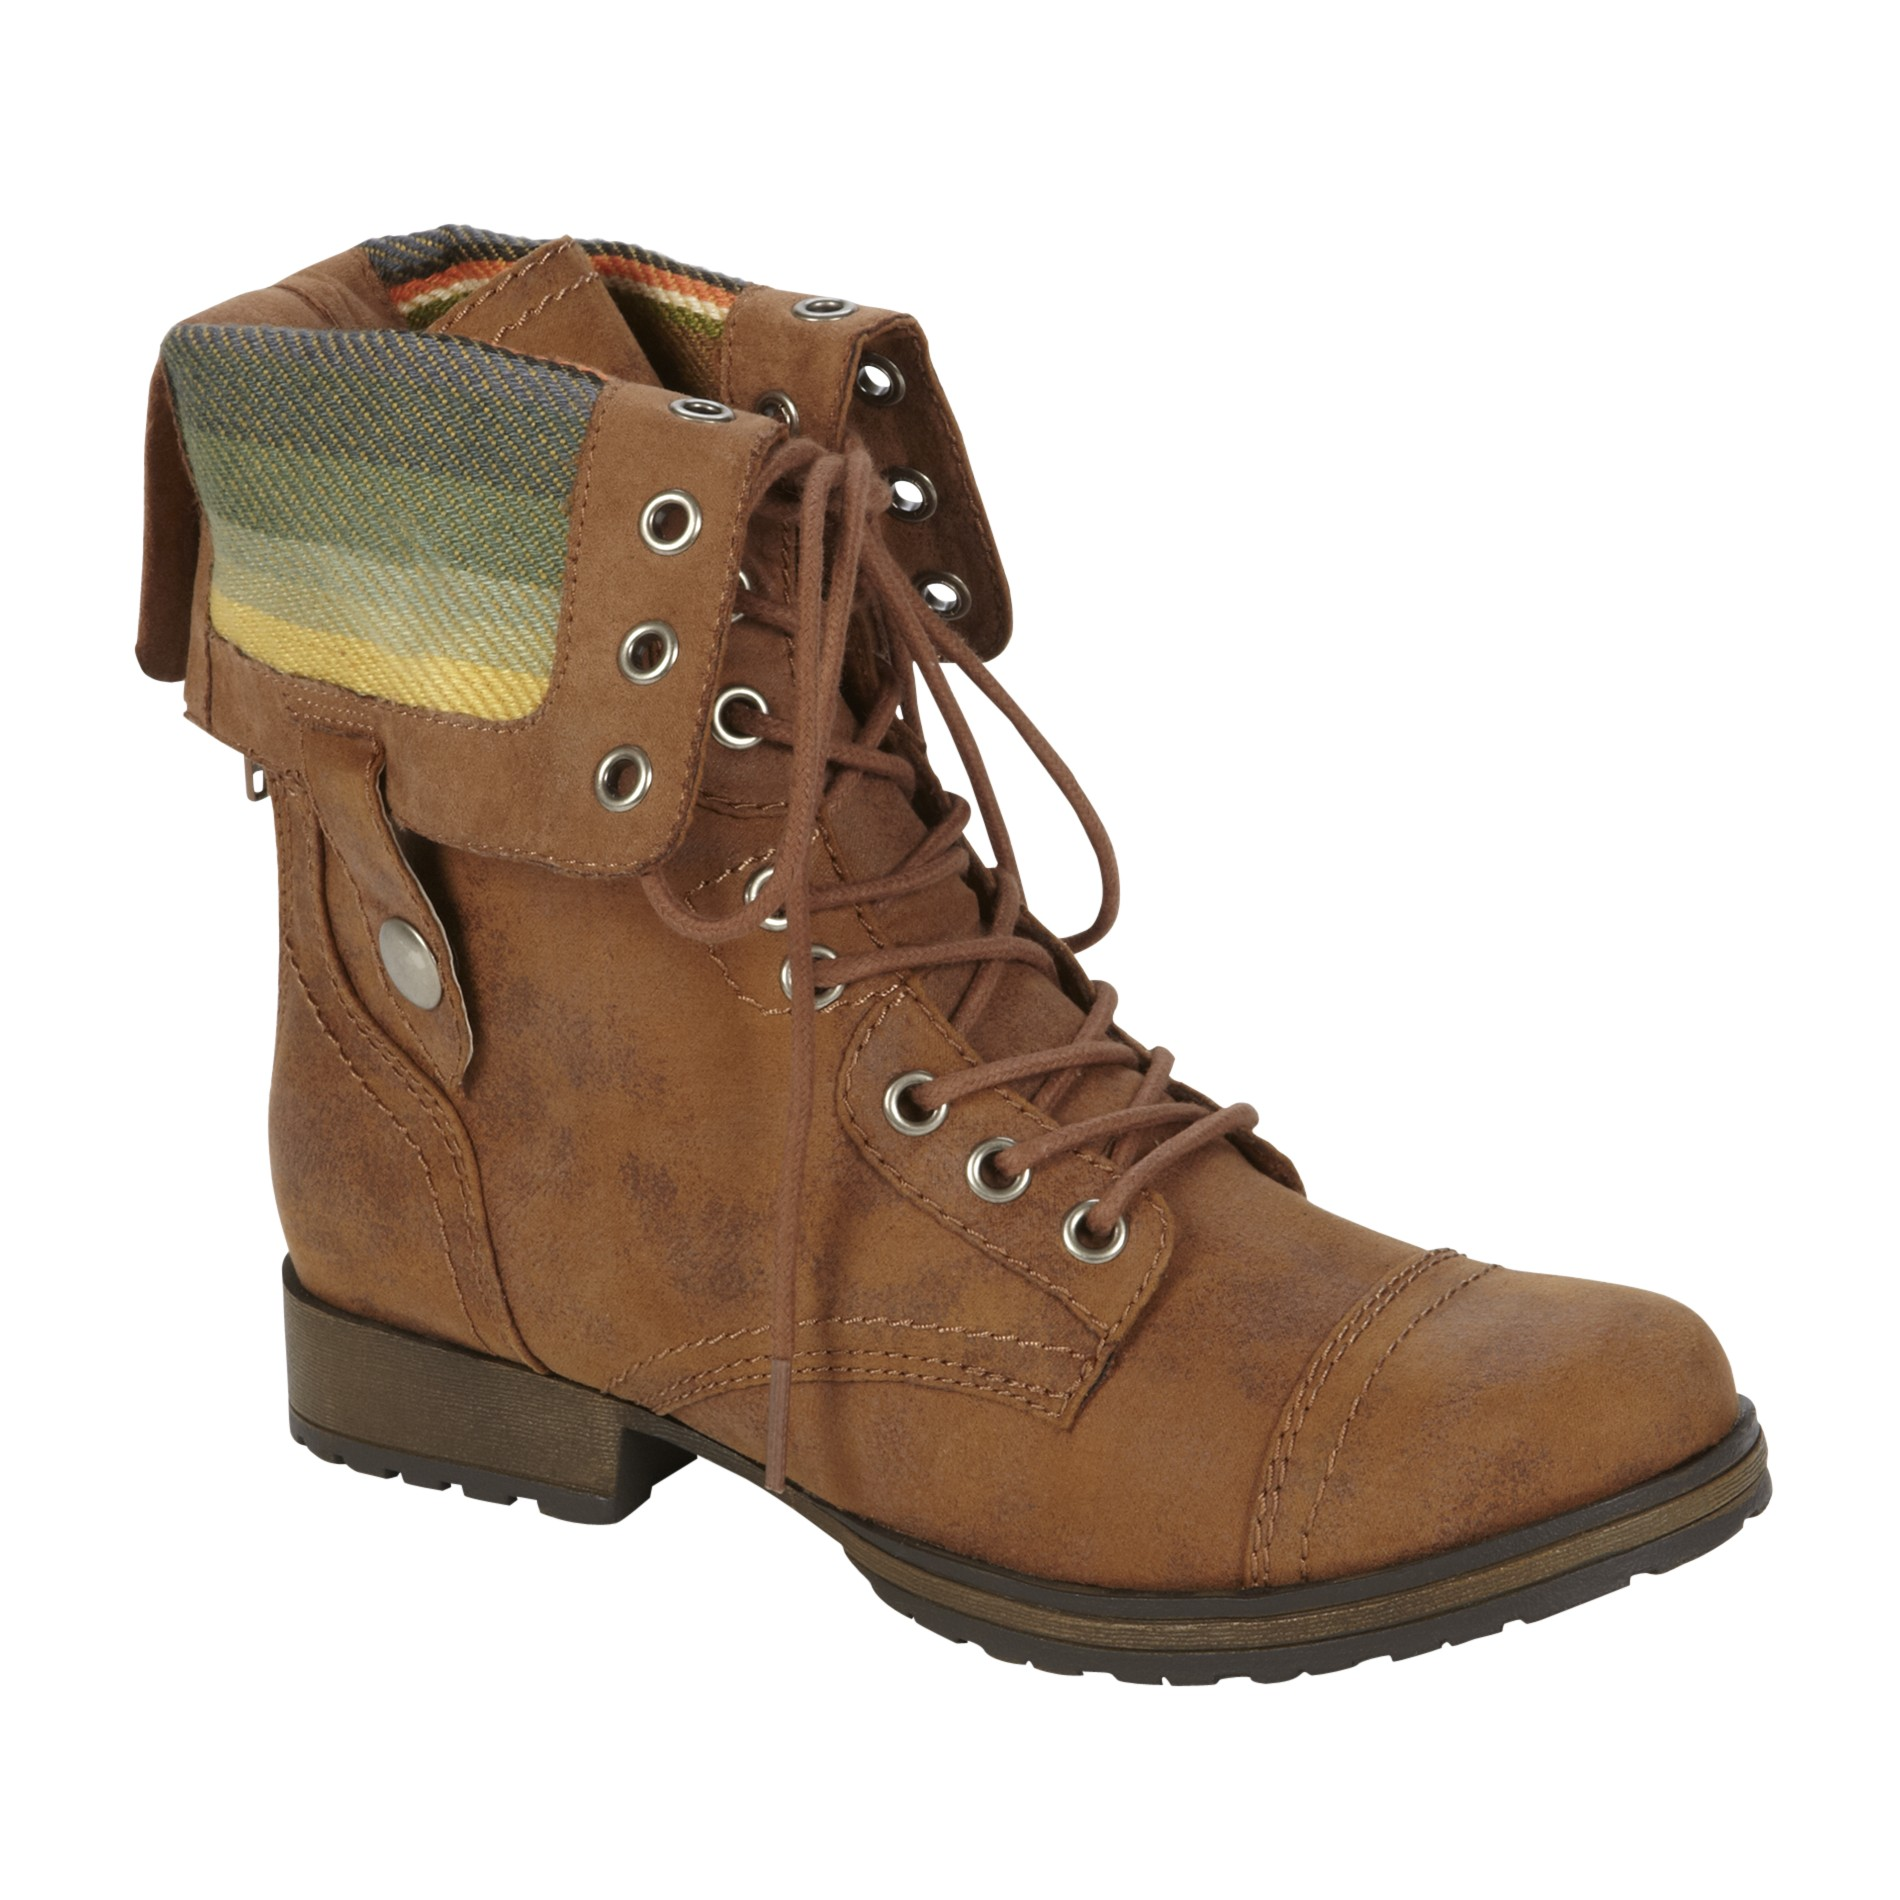 Bongo Lace Up Boots for Women